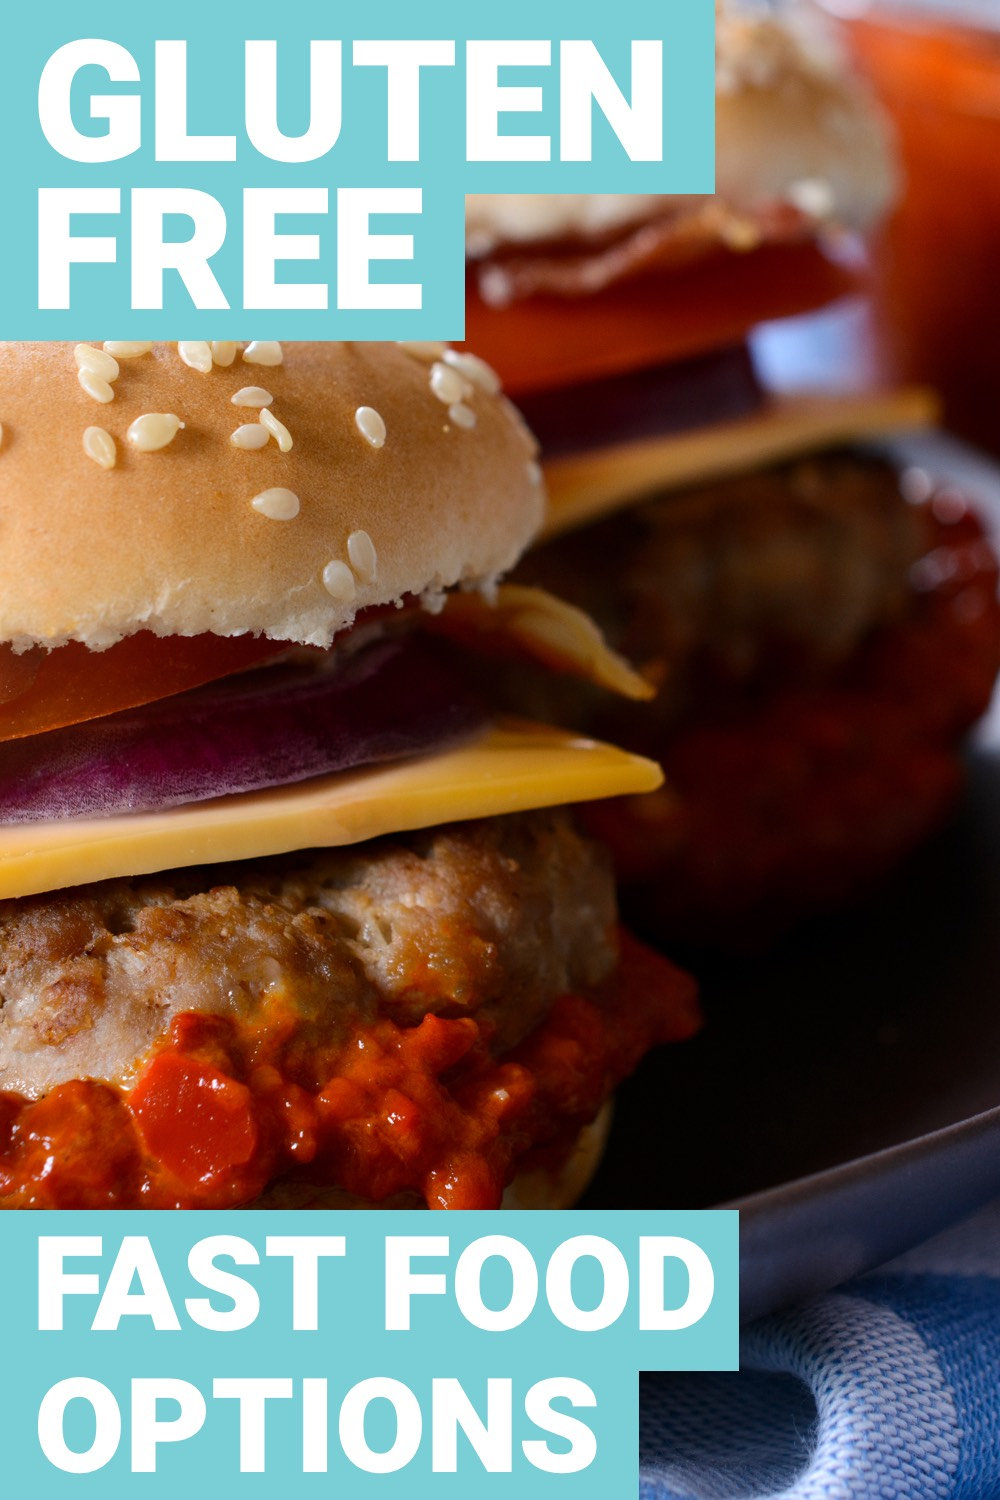 Gluten-free and fast food haven't always mixed, but fast food restaurants are starting to keep up. Here are gluten-free fast food options for when you feel like you don't have any.